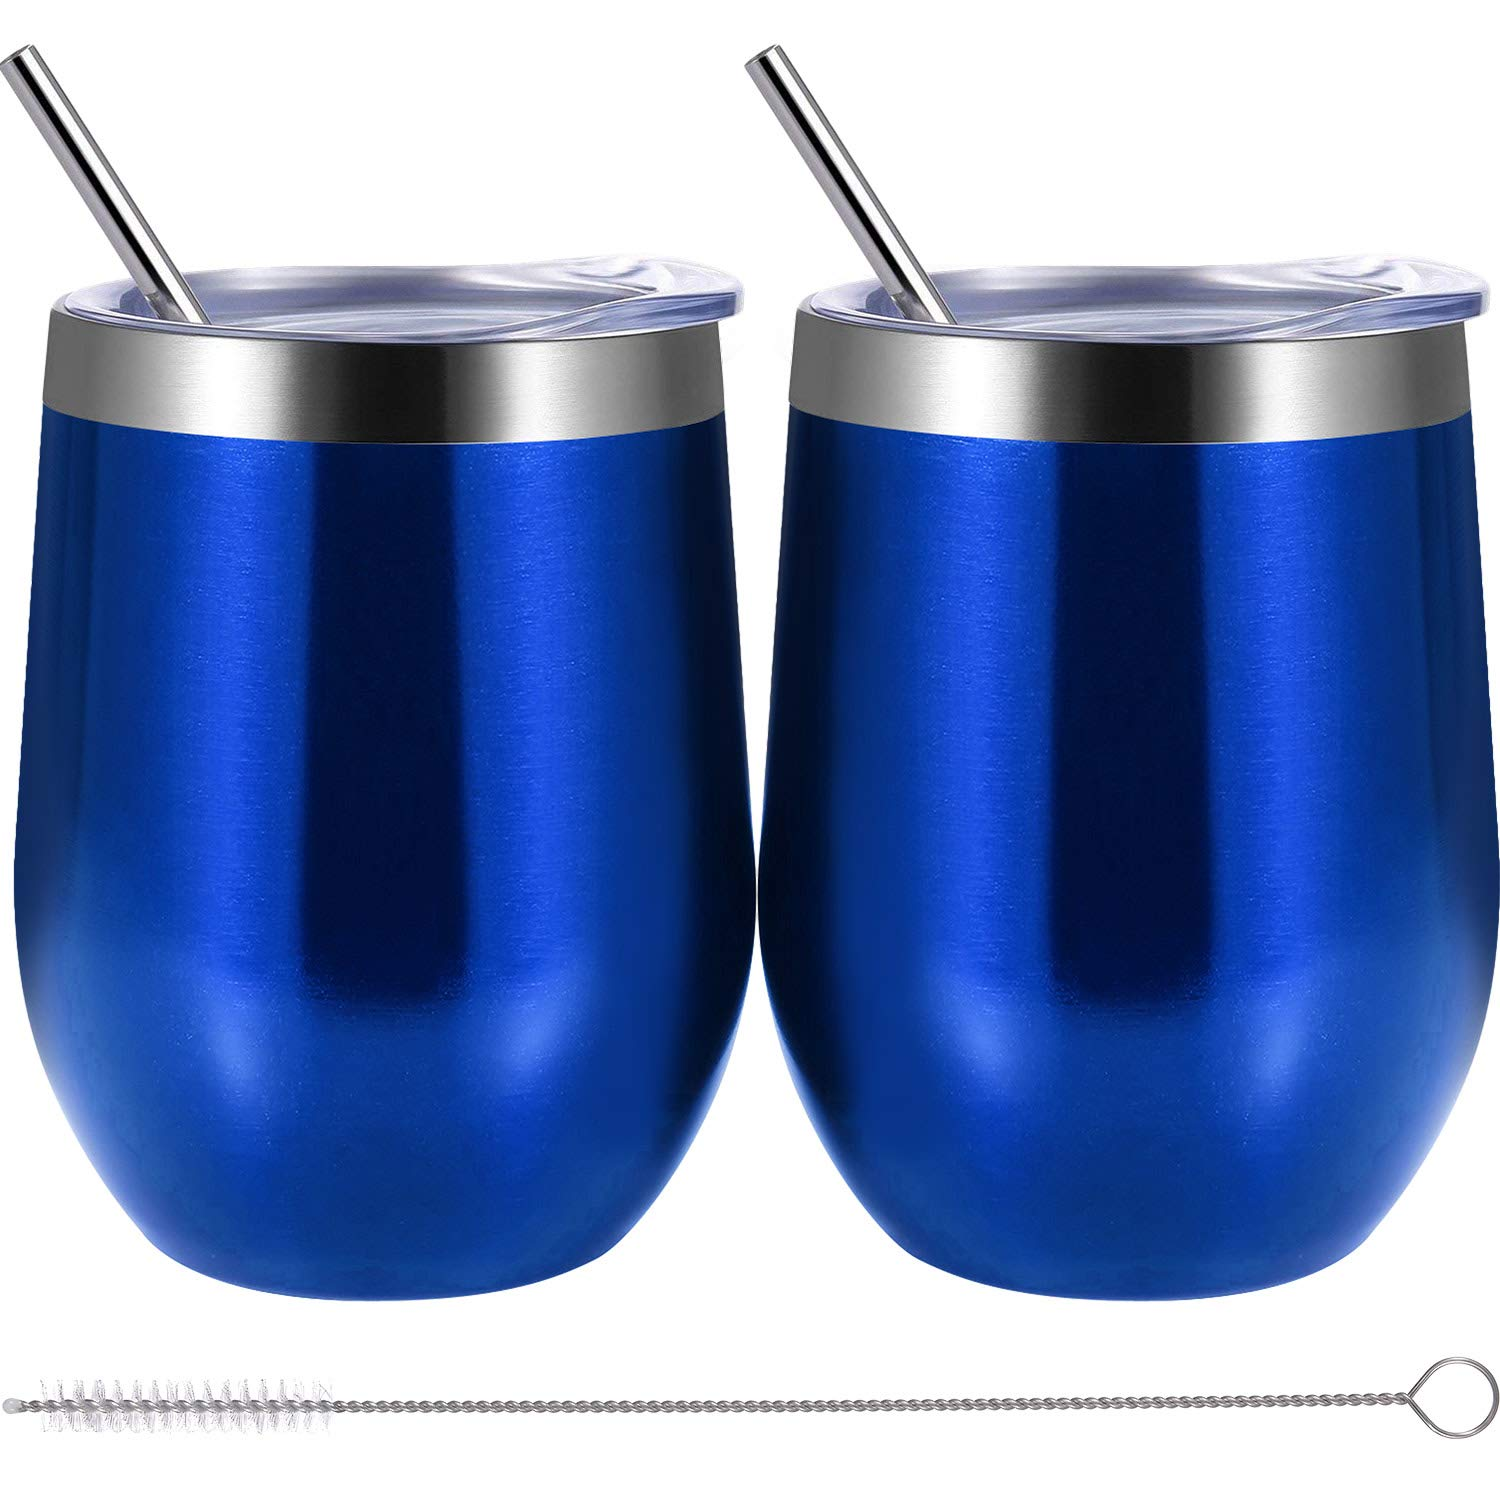 b3f2052cc85 Skylety 12 oz Double-insulated Wine Tumbler, Stainless Steel Tumbler Cup  with Lids and Straws for Wine, Coffee, Drinks, Champagne, Cocktails, ...